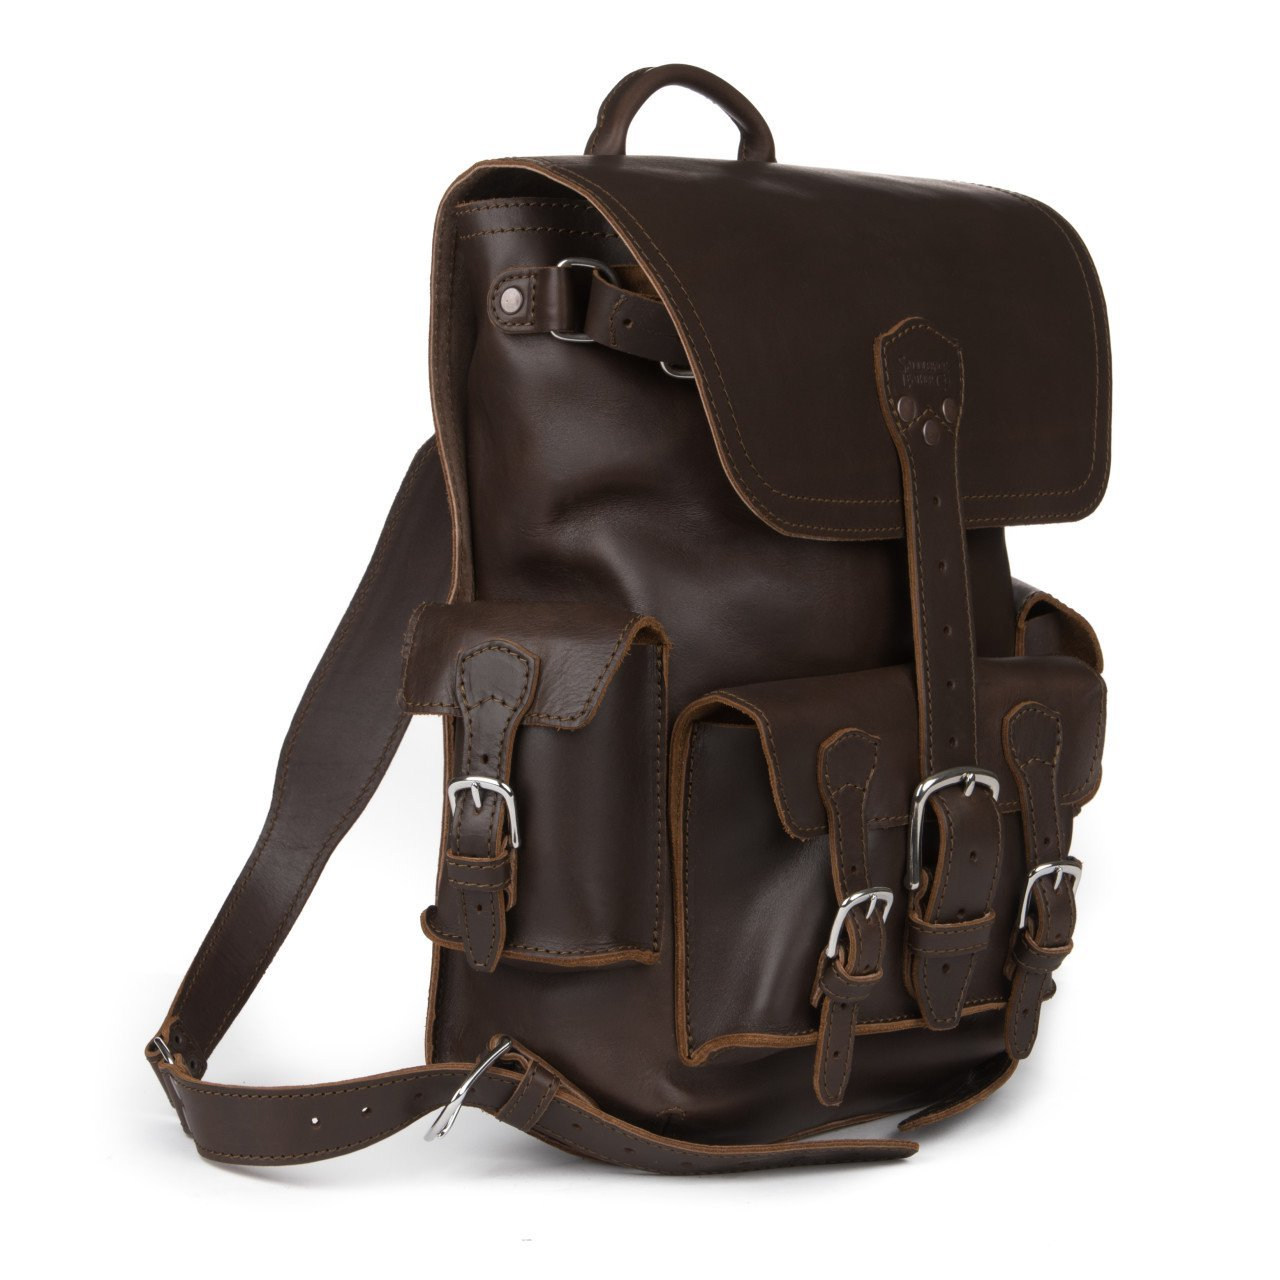 4e55cb30a3 Thin Front Pocket Full Grain Leather Laptop Computer Backpack School  Business Travel Includes 100 Year Warranty  Computers   Accessories